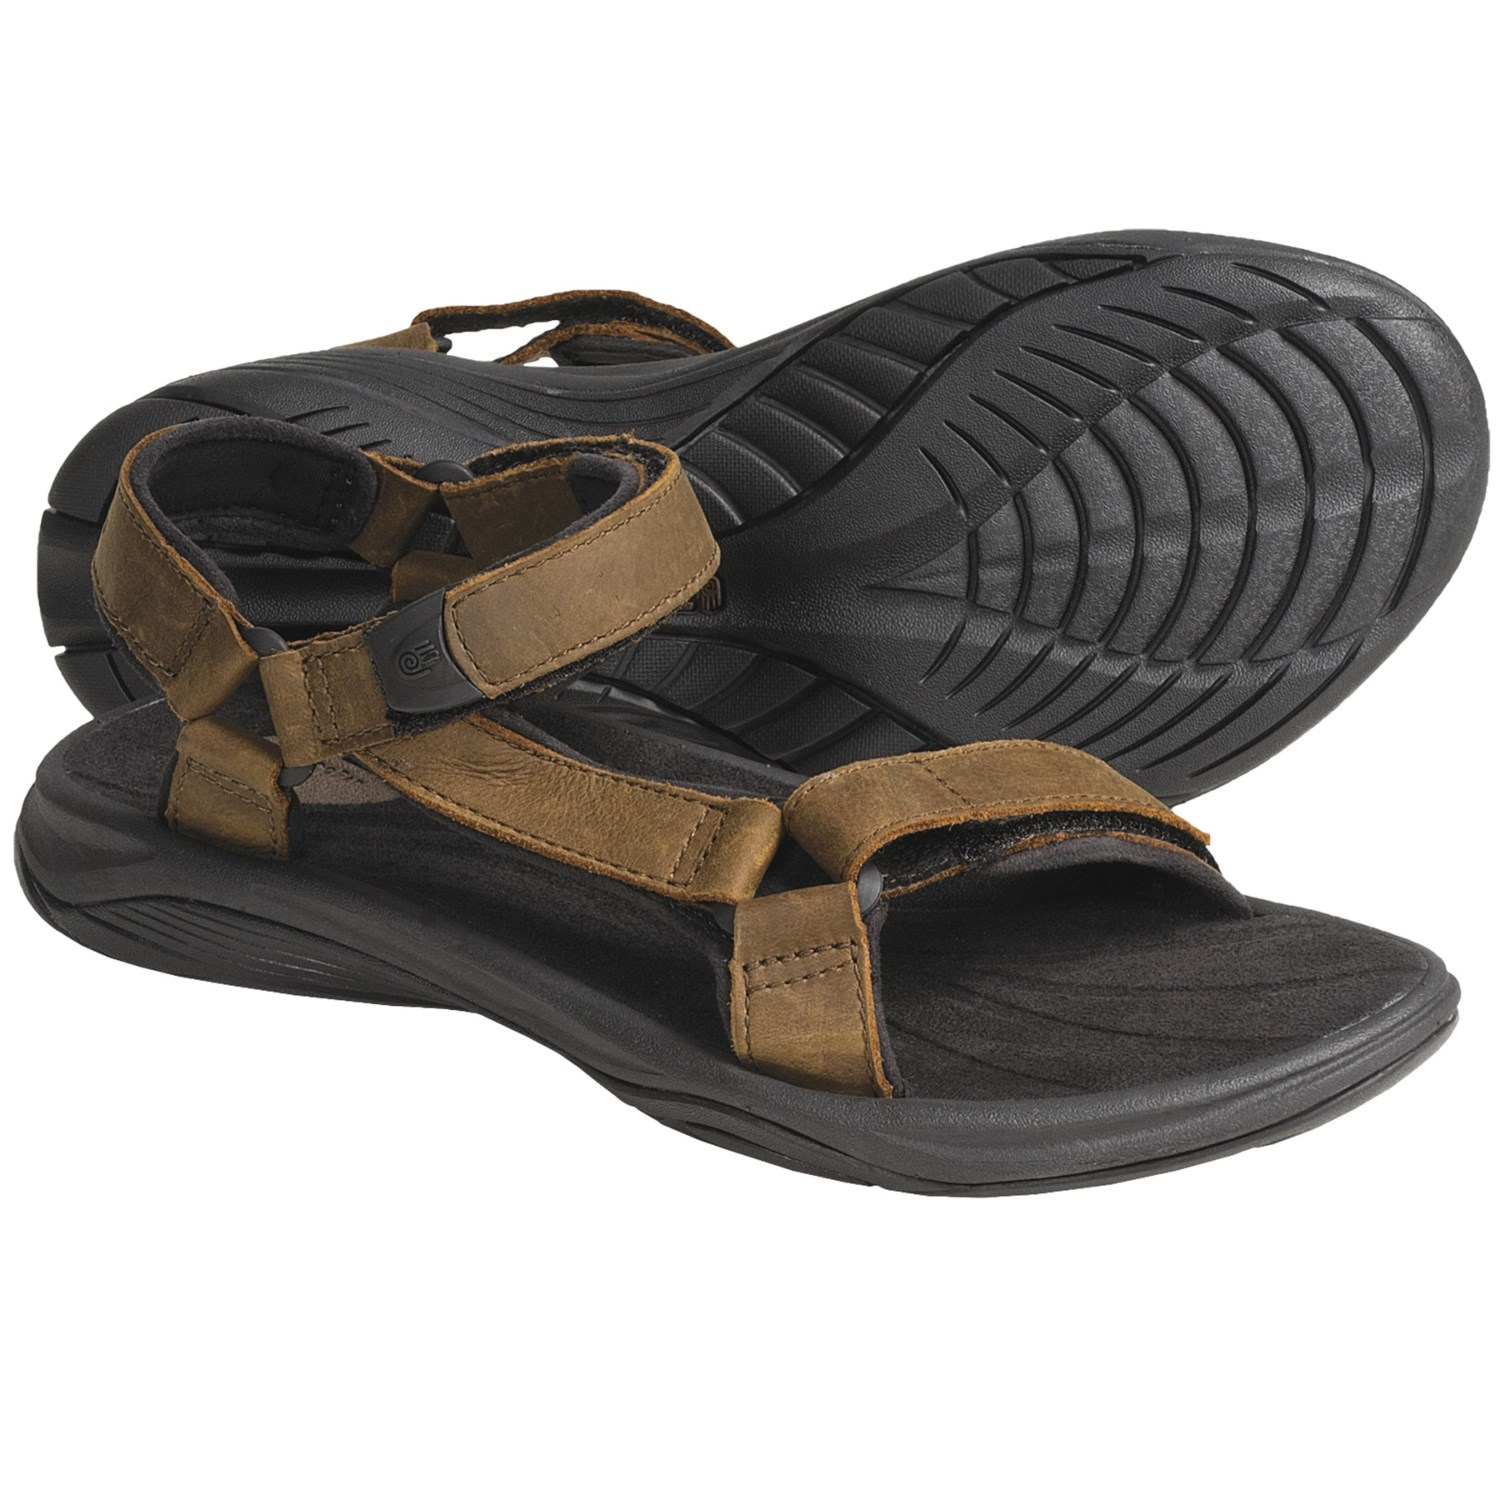 Teva Pretty Rugged 3 Sandals For Women 3993r Save 71